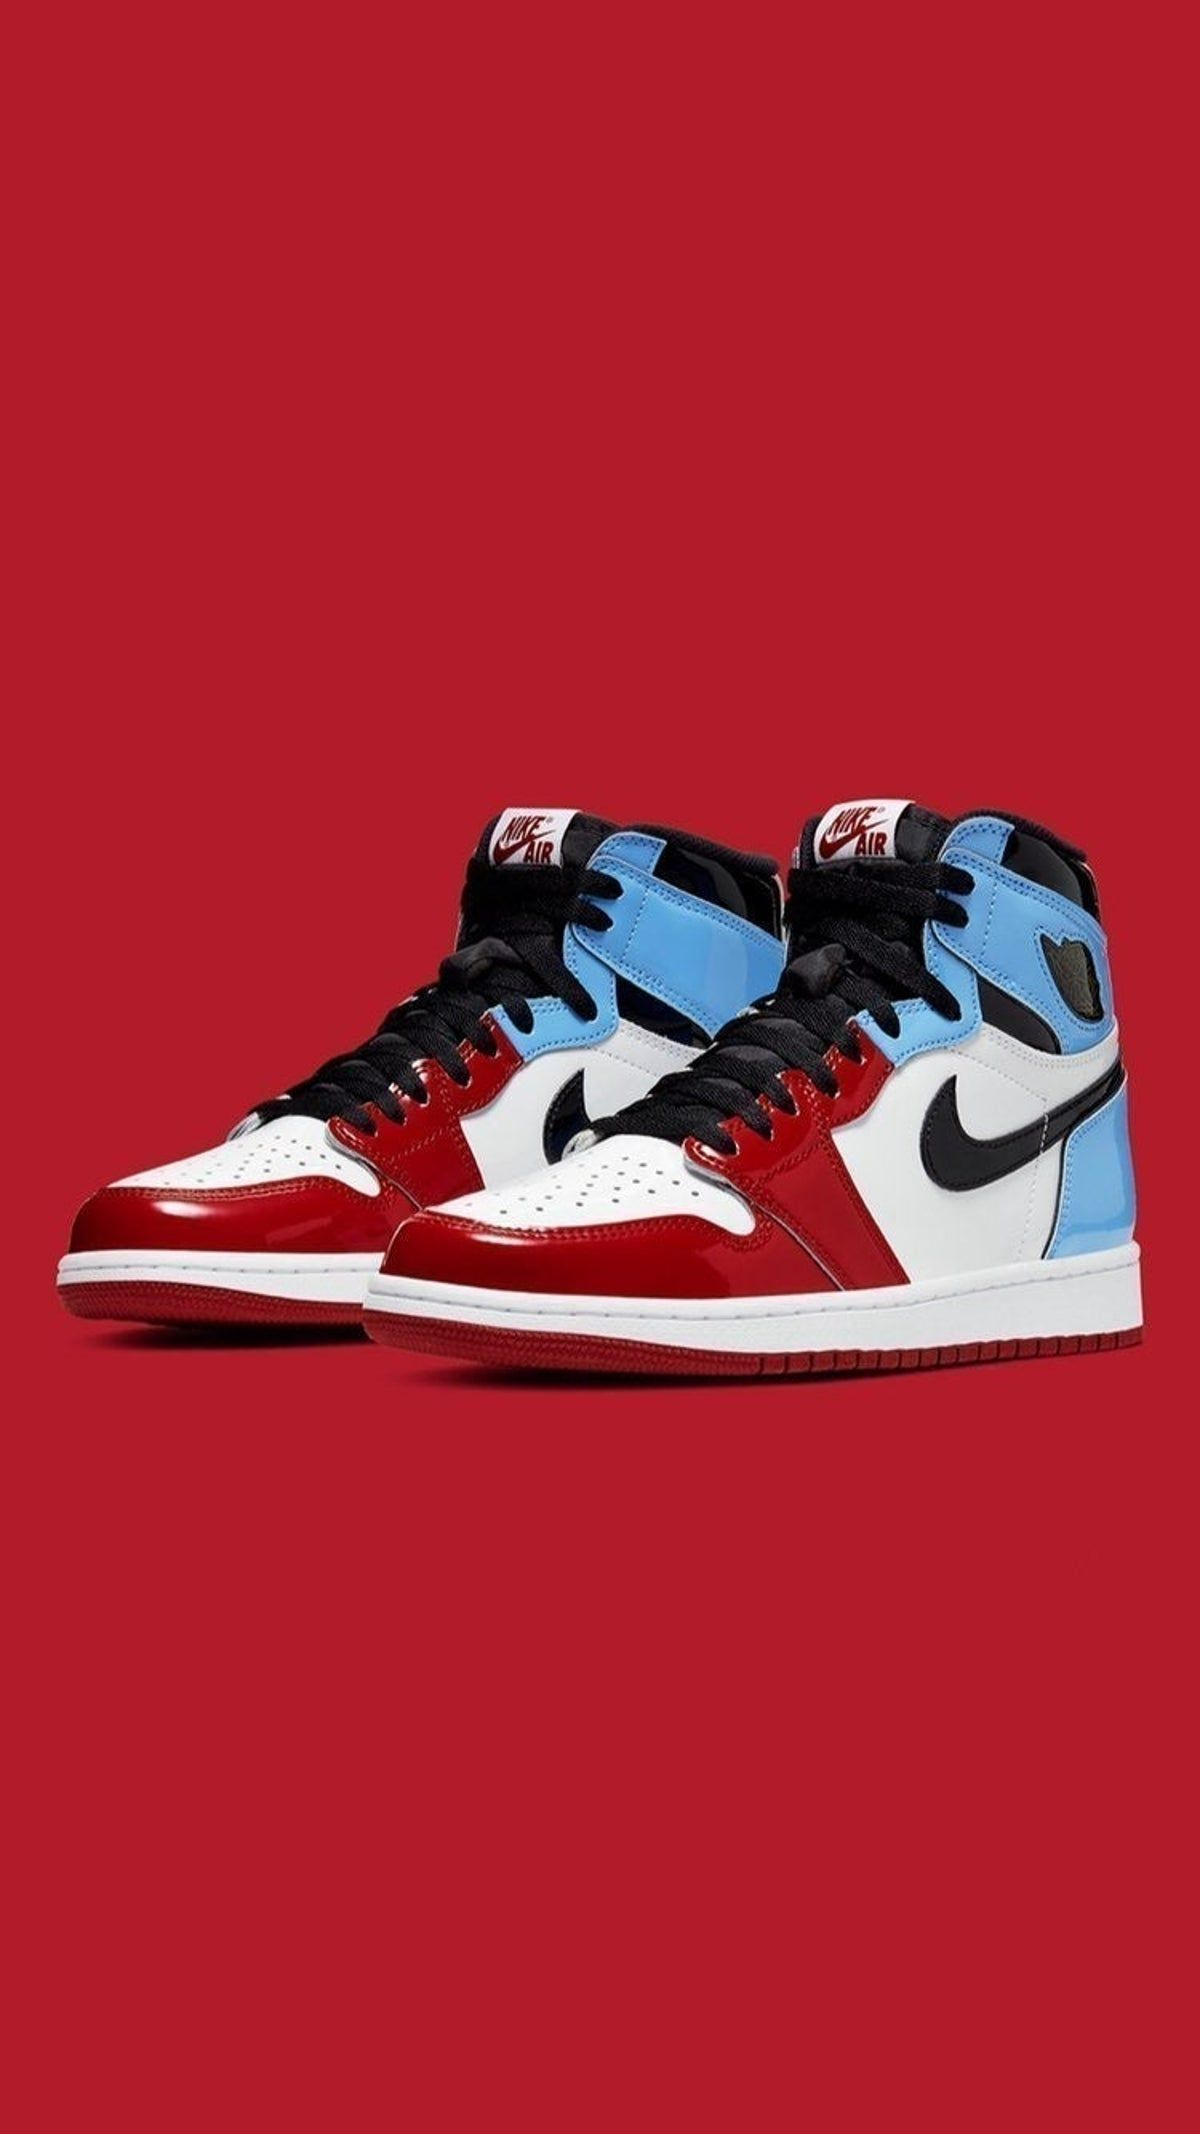 Air Jordan 1 High Fearless Unc Chicago In 2020 Air Jordans Sneakers Wallpaper Jordan Shoes Wallpaper